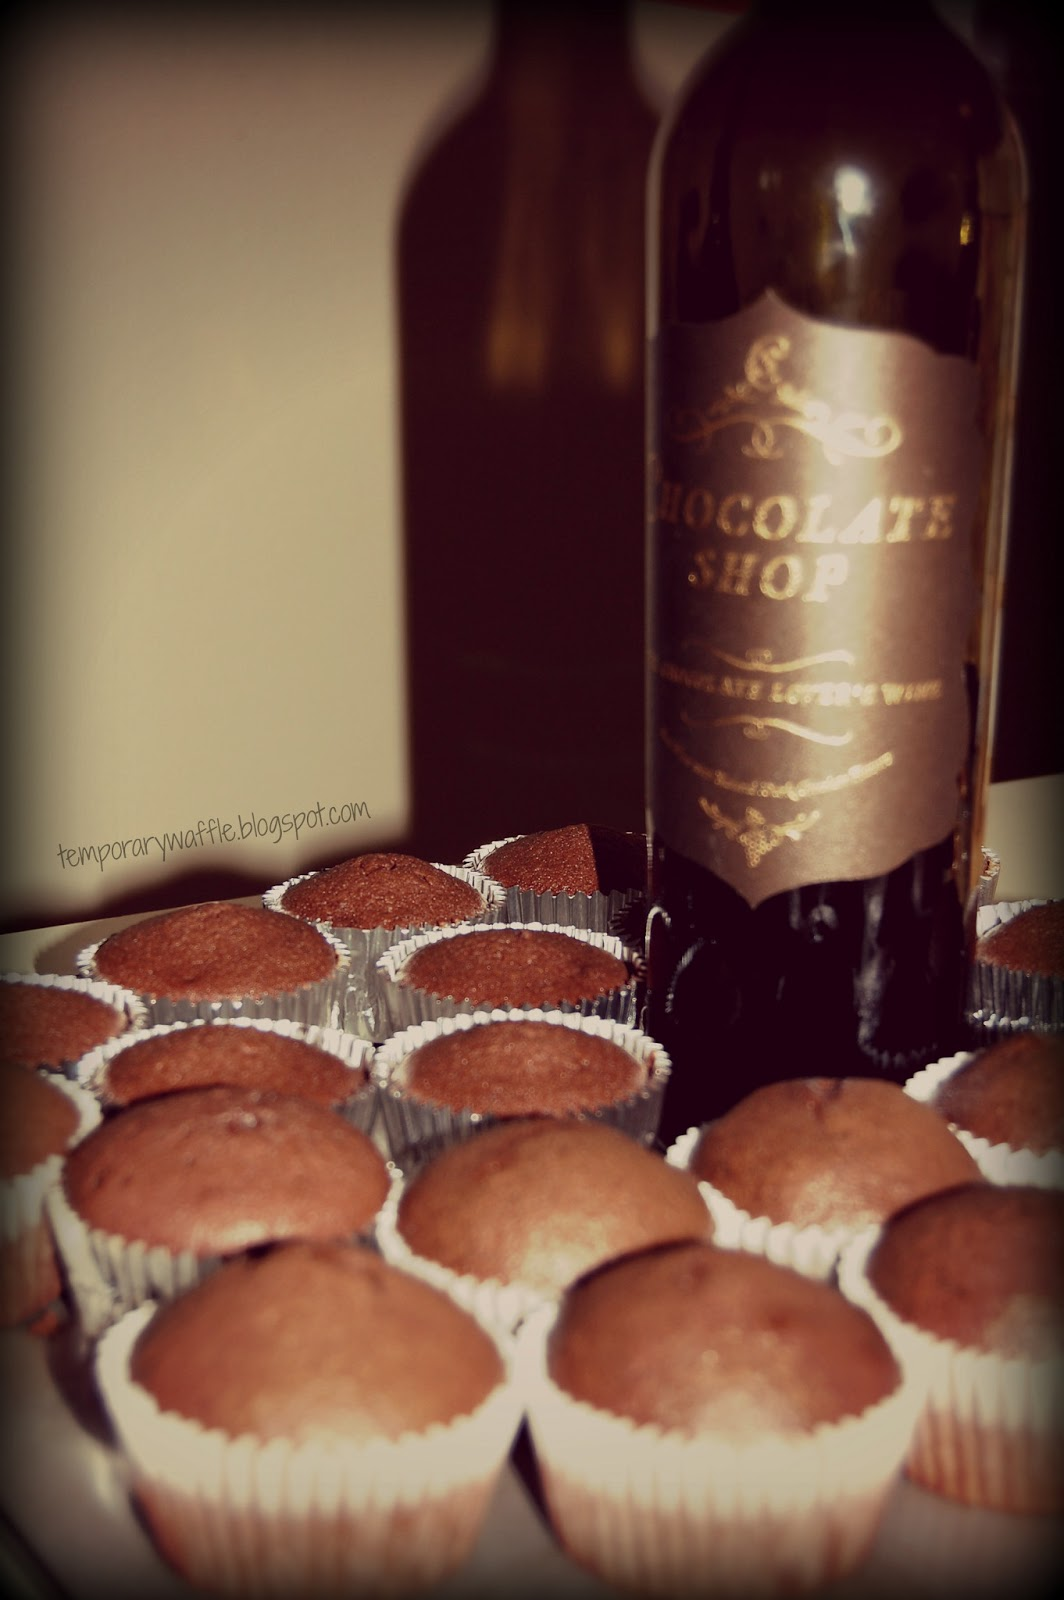 Red Wine Chocolate Mousse